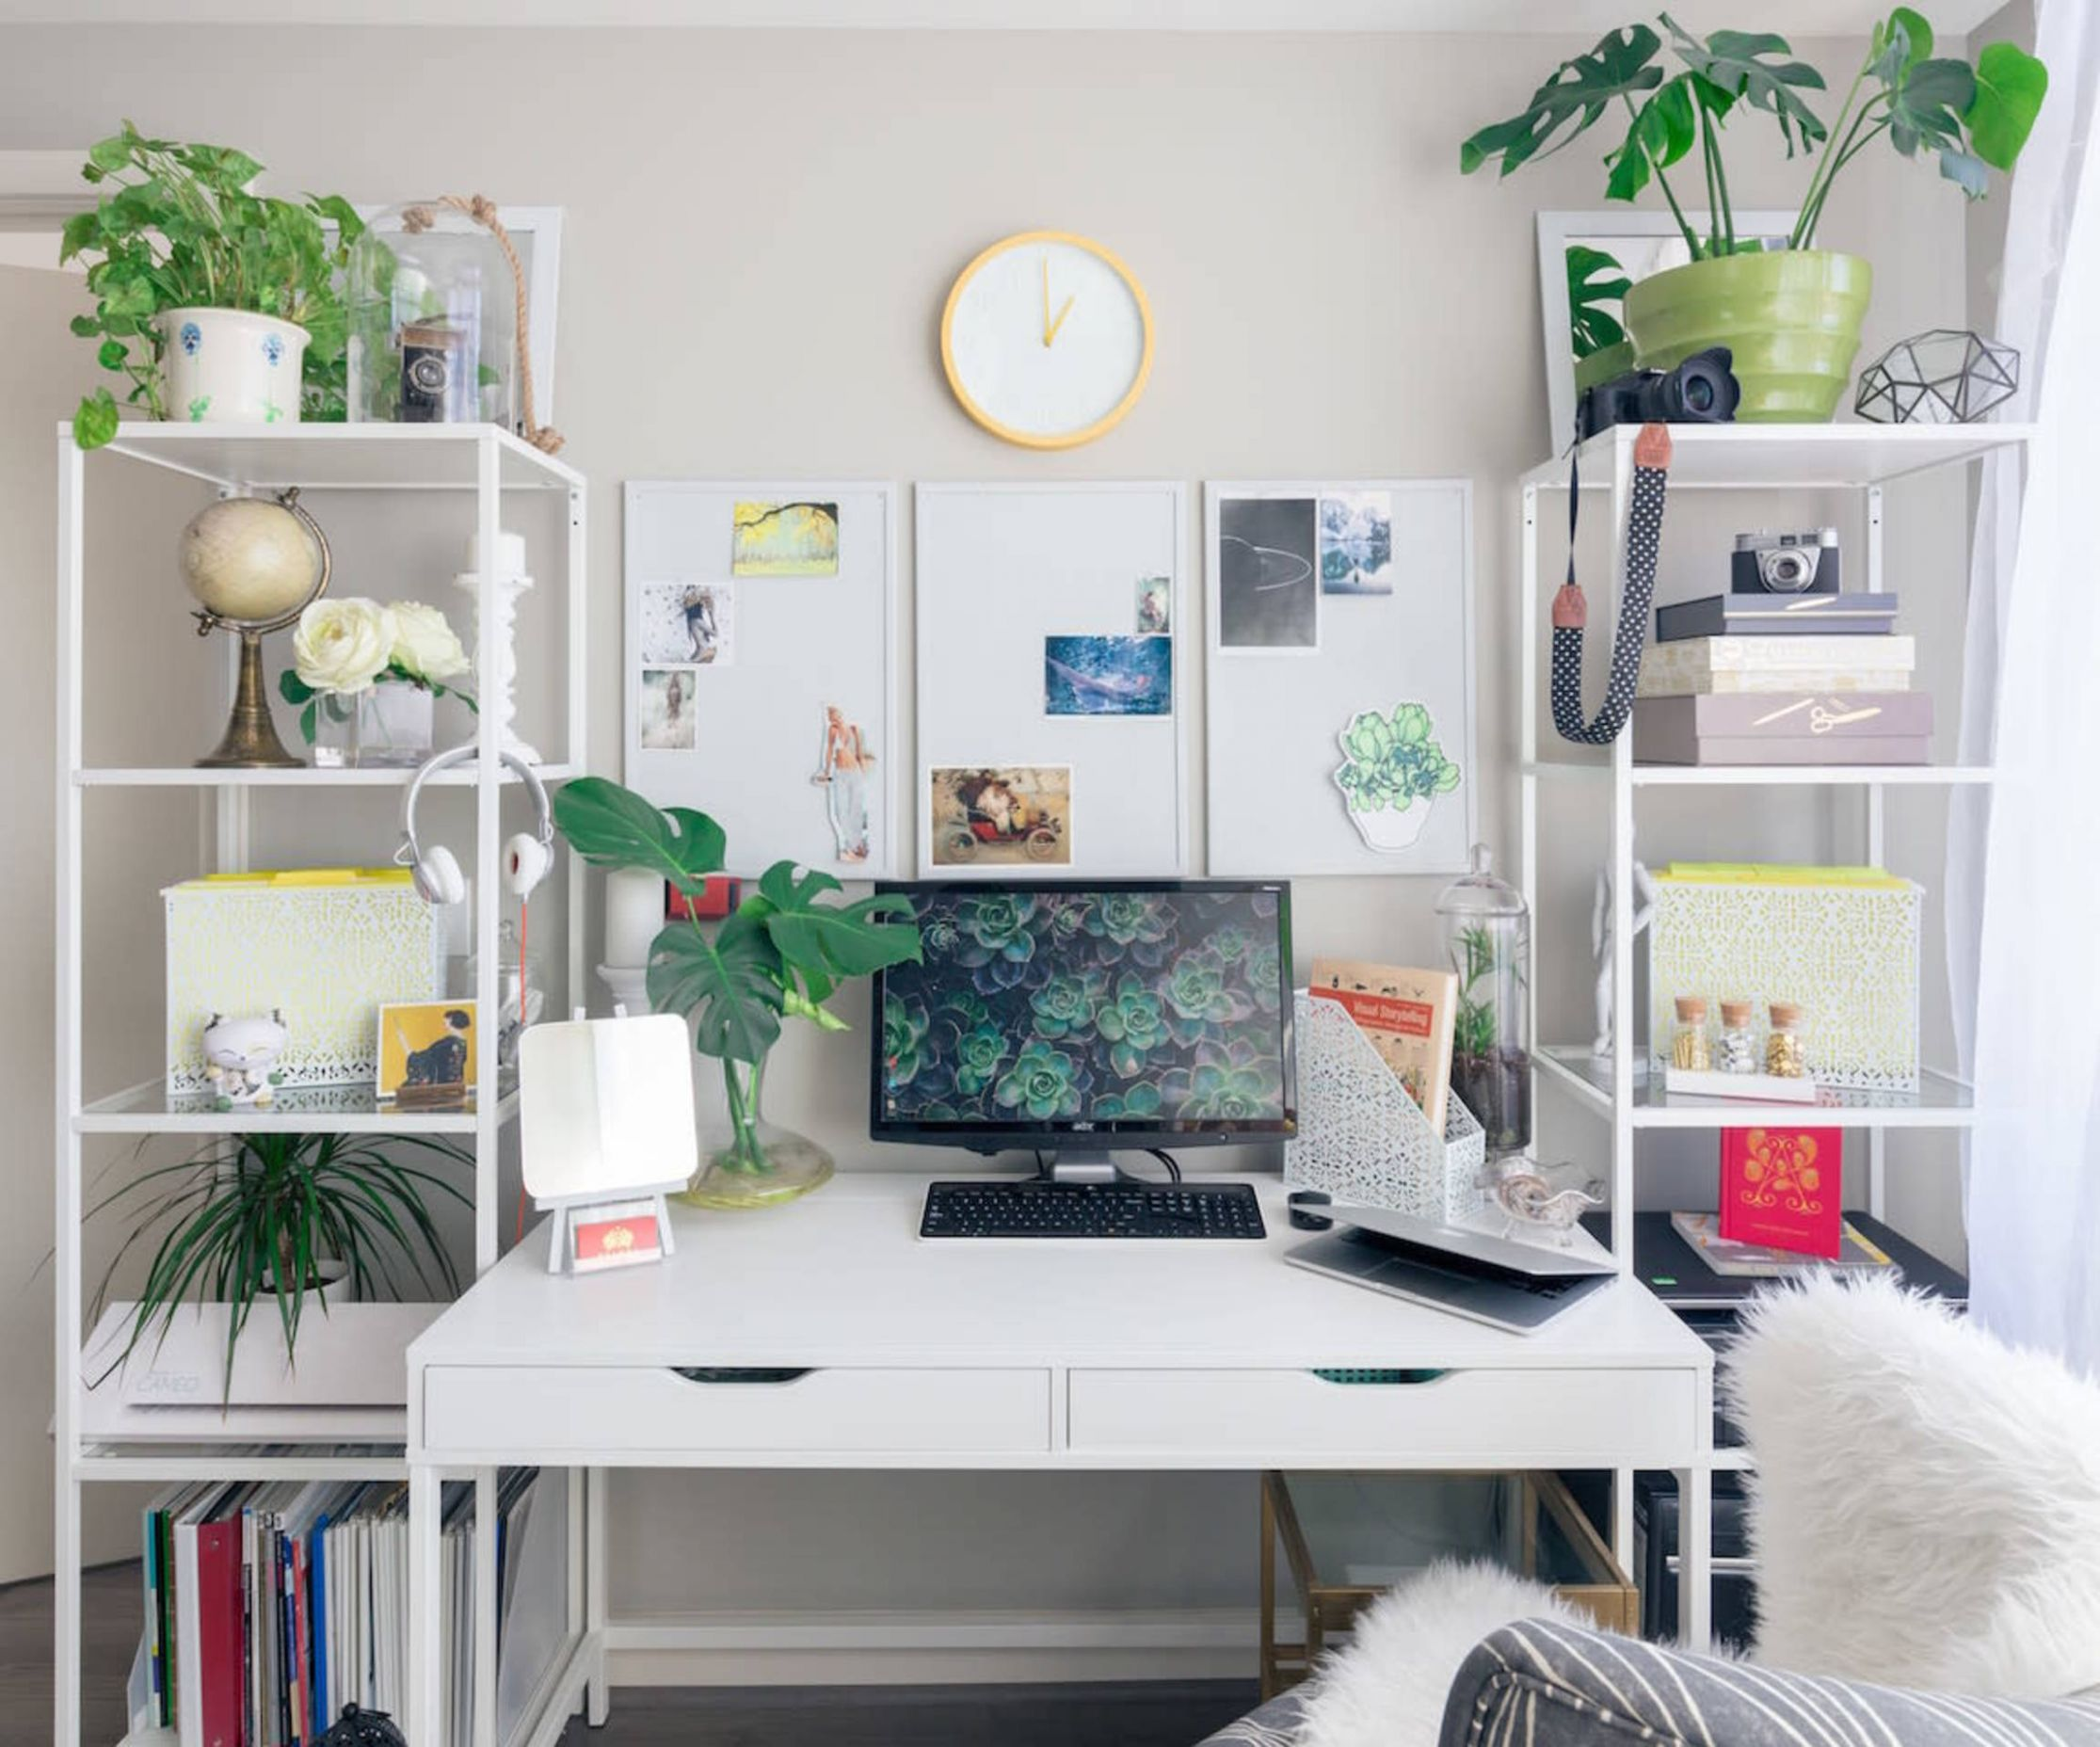 10 Home Office Ideas To Help You Work From Home Like A Boss - home office job ideas